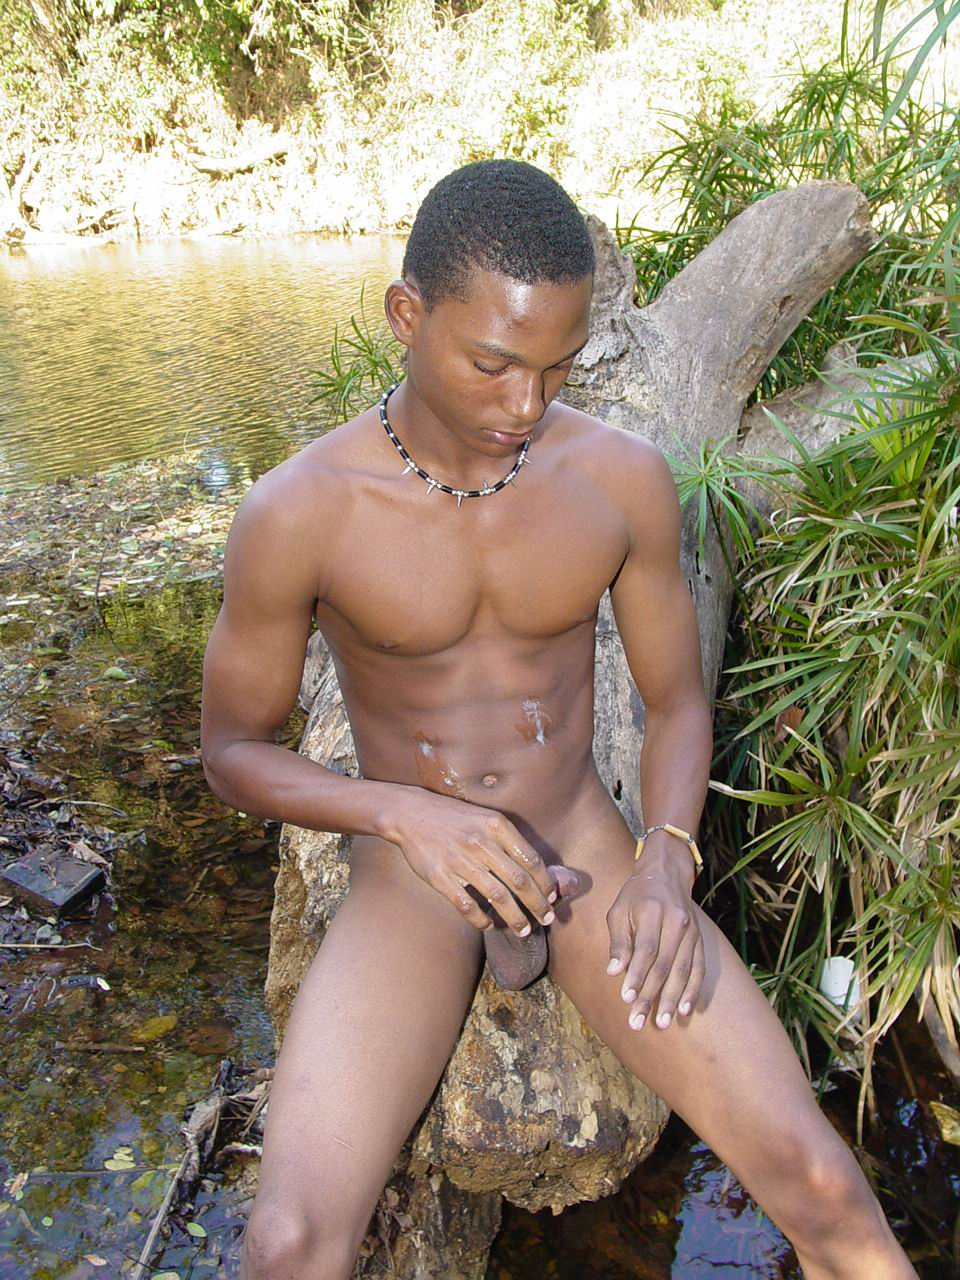 The African guys naked sex